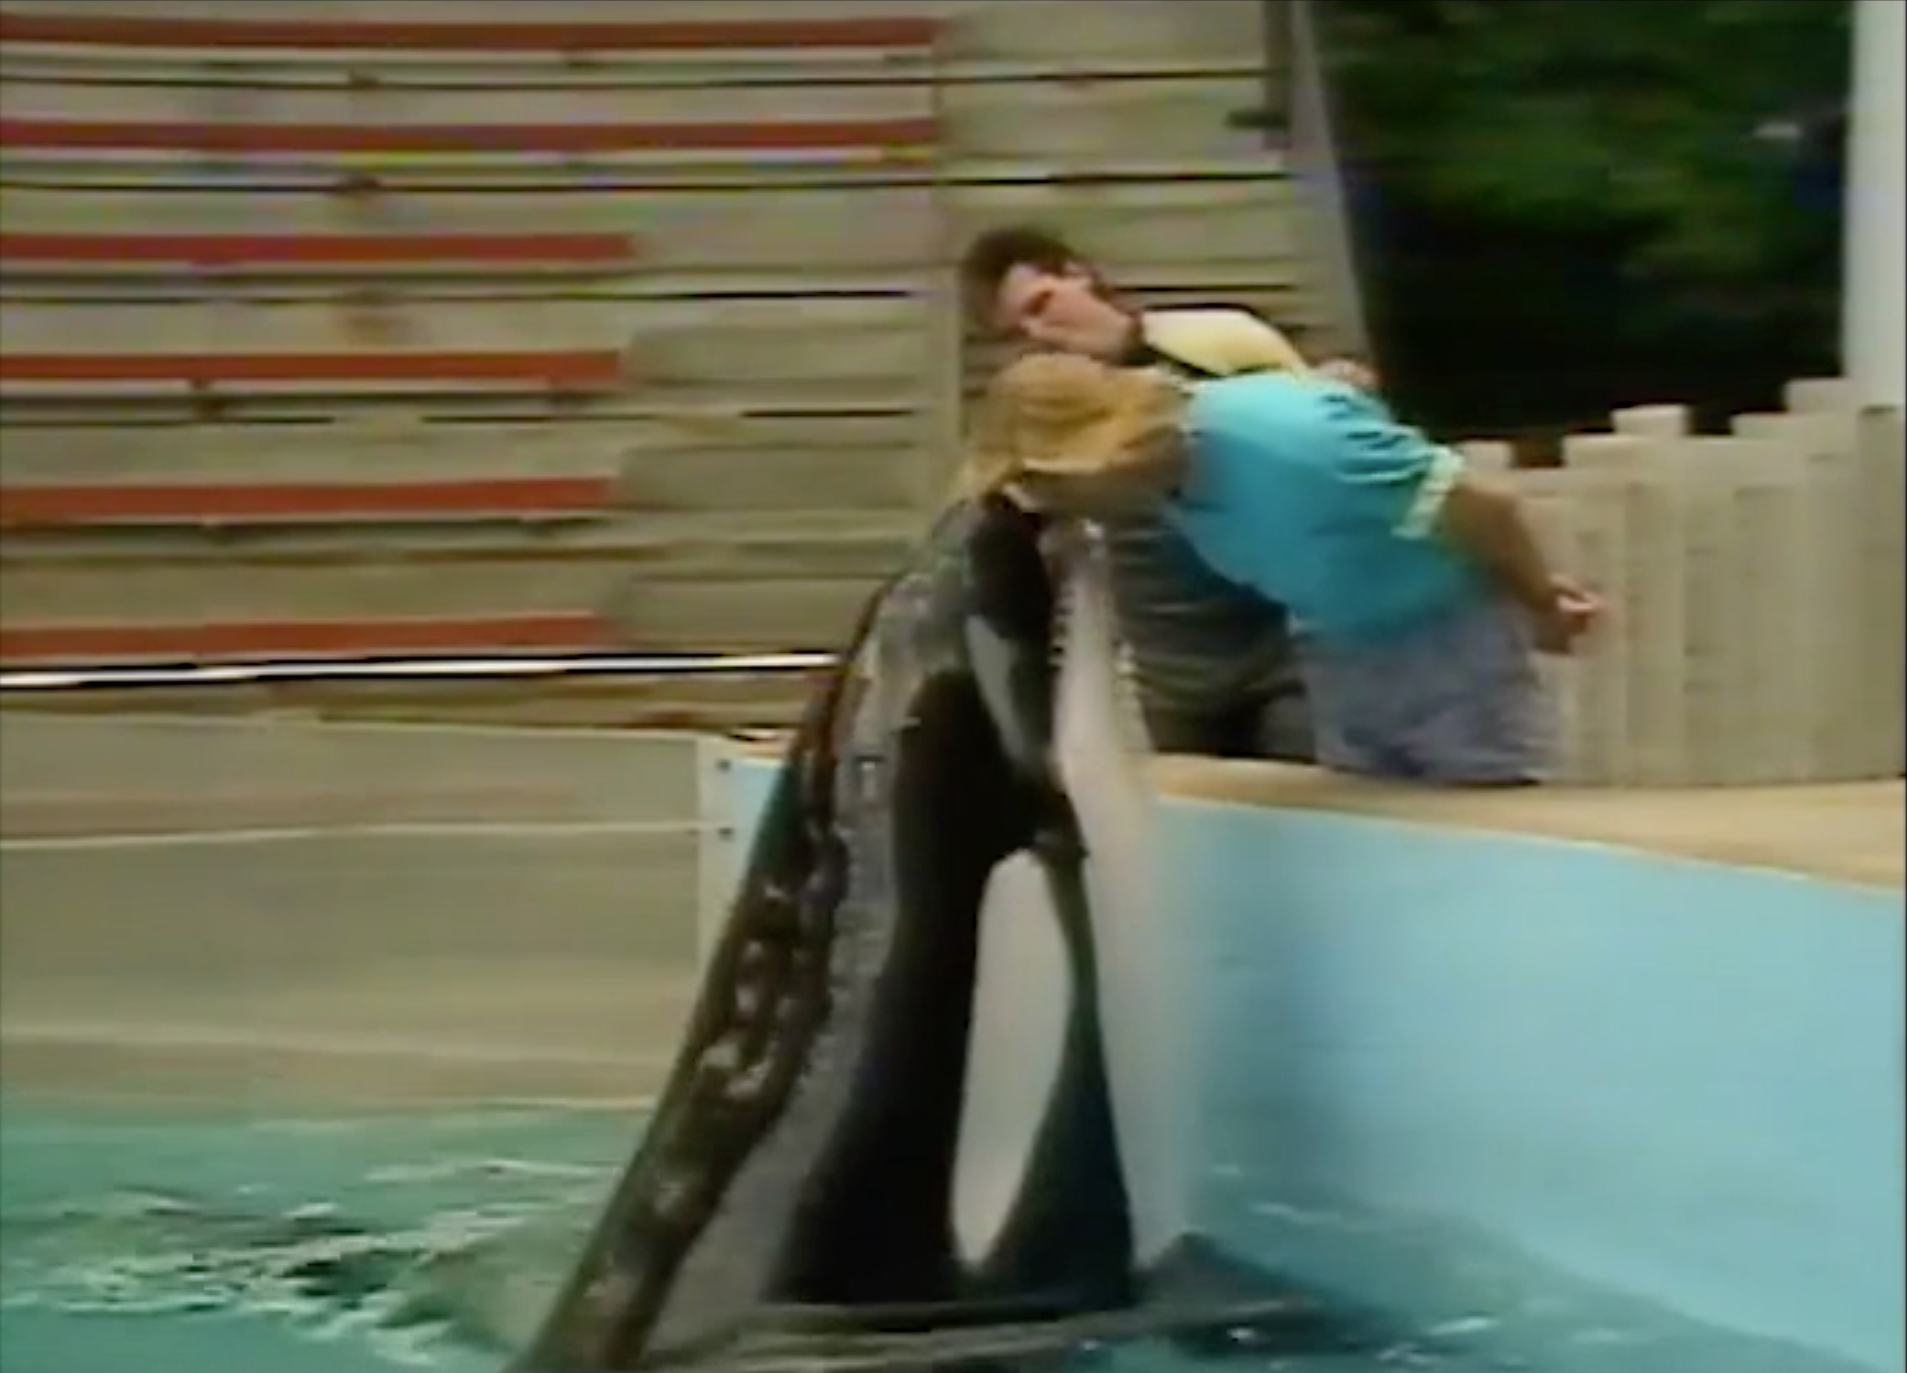 Seconds before a crazed orca whale bit off much of Jim's head in 1991 at Niagara Falls Marineland. Jim has continued working unimpaired ever since.